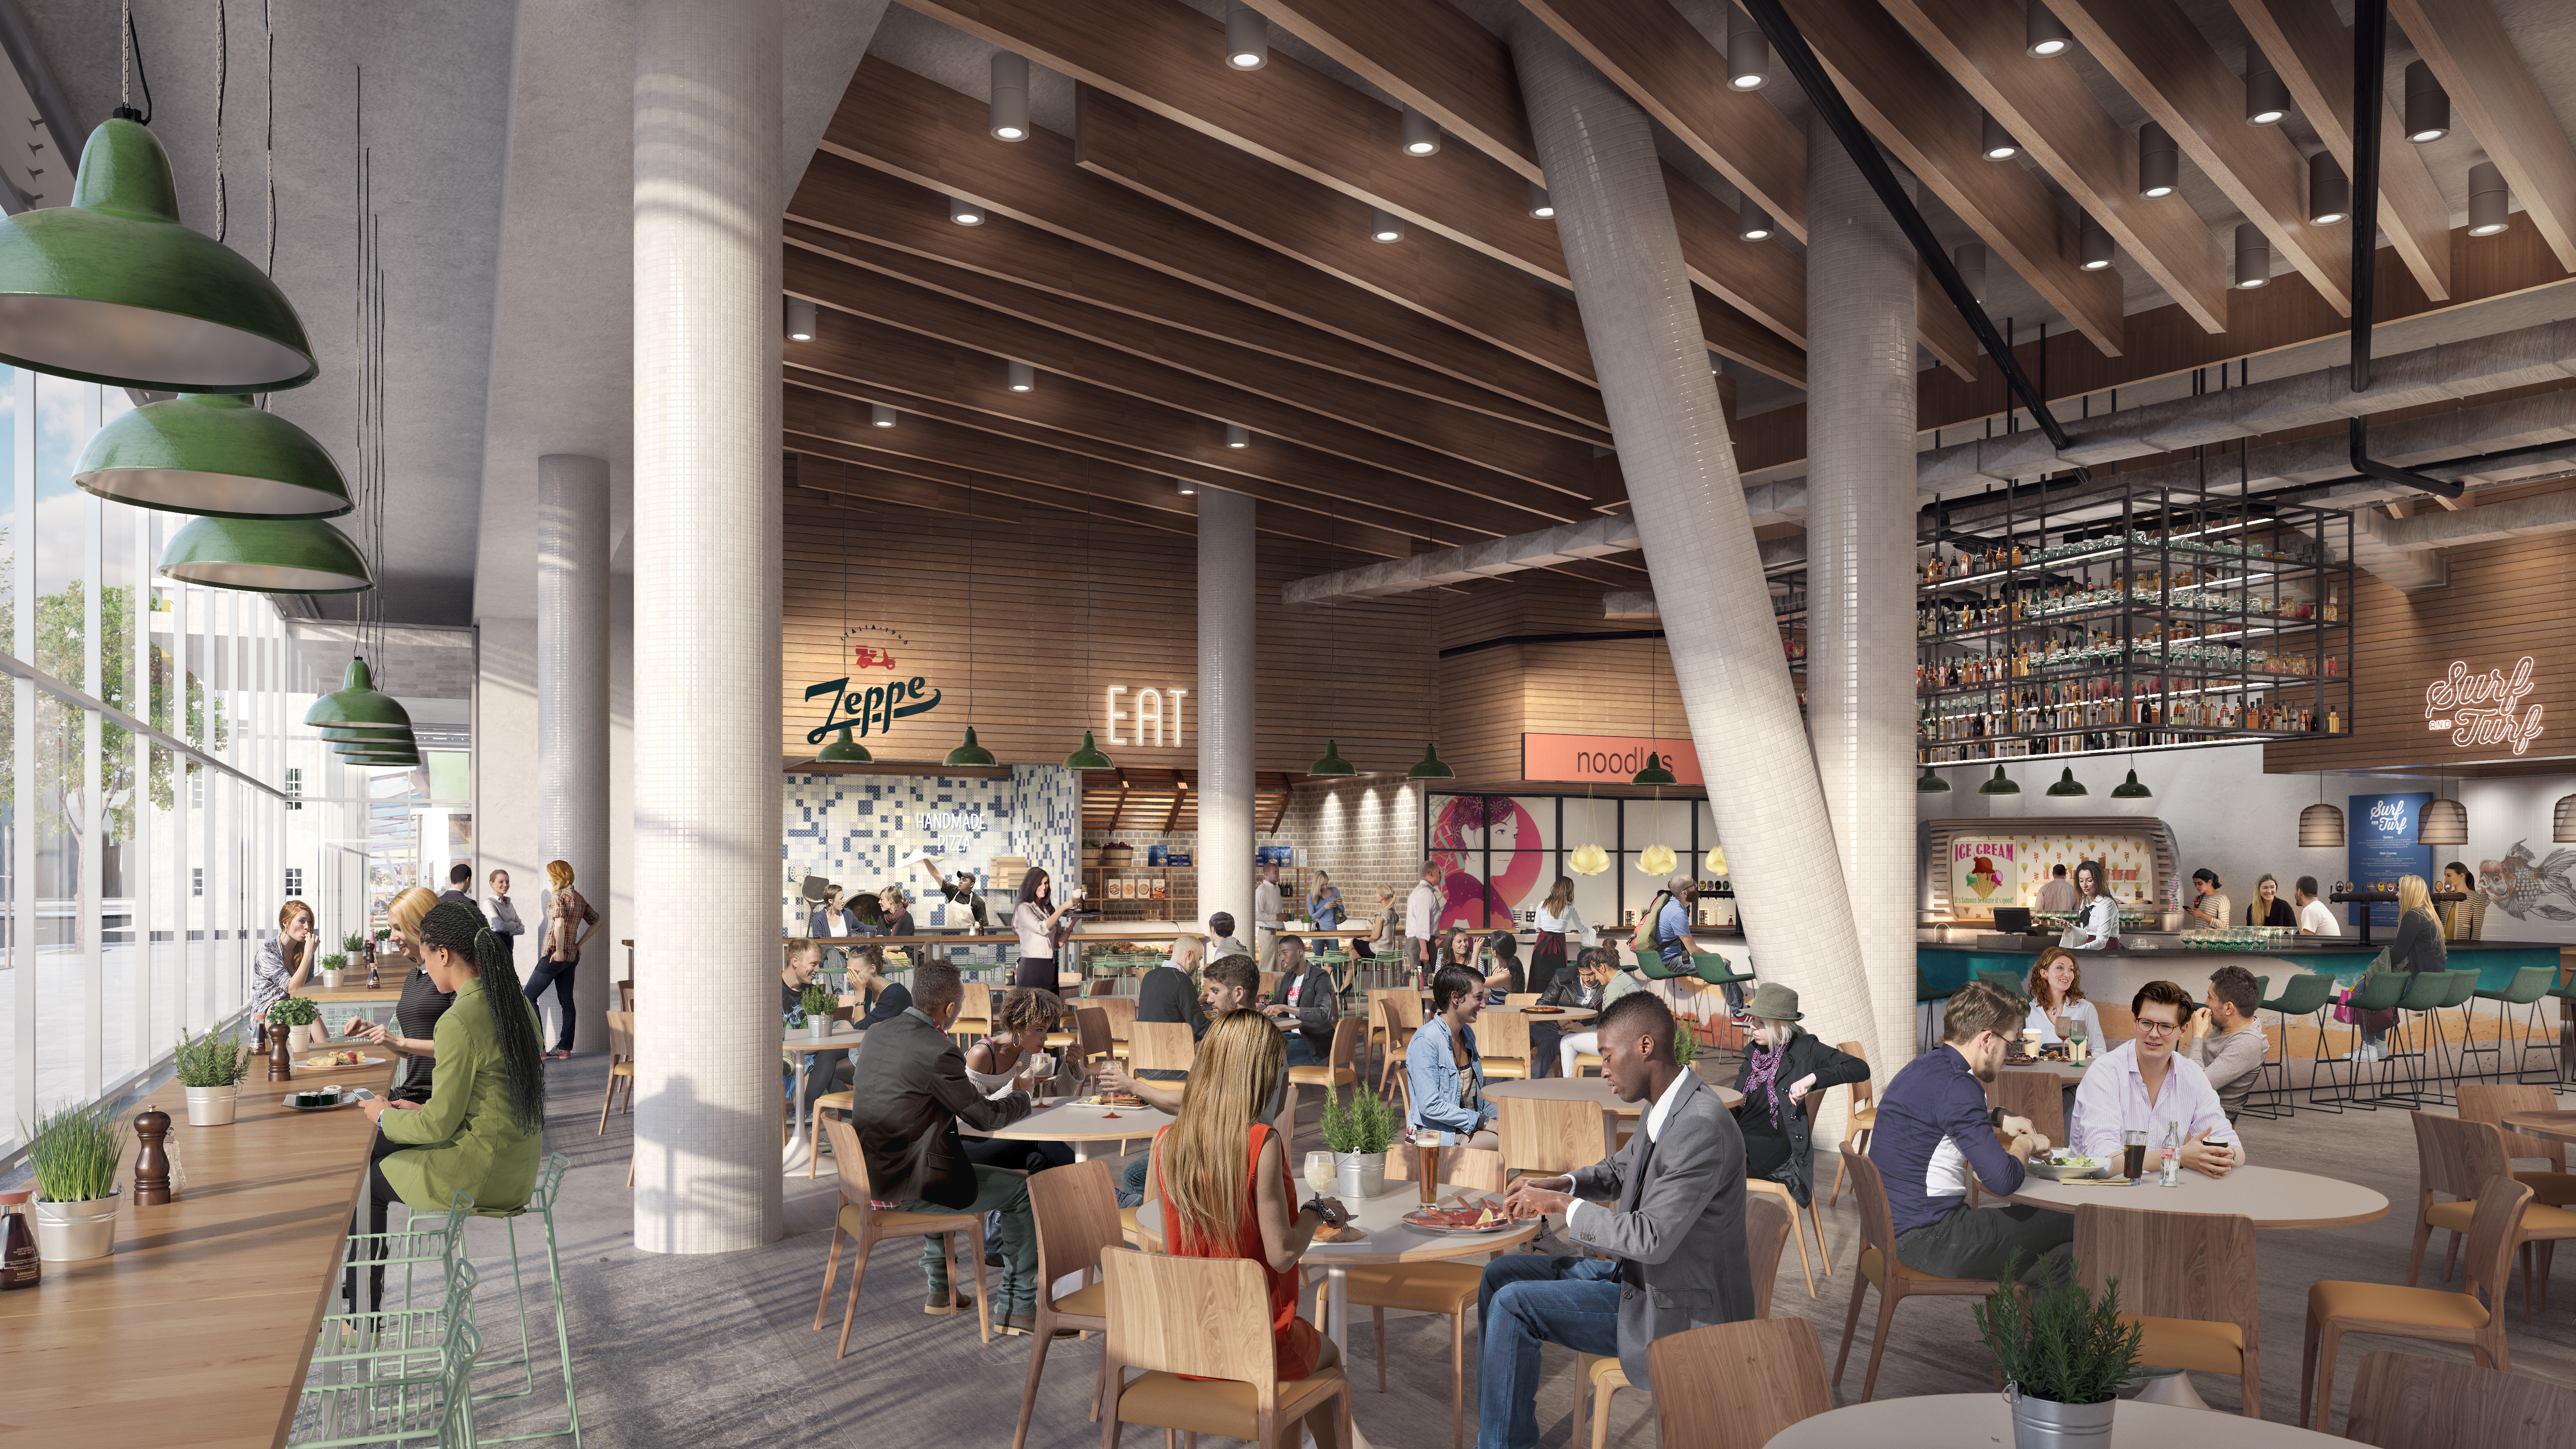 A rendering of the Jacx food hall